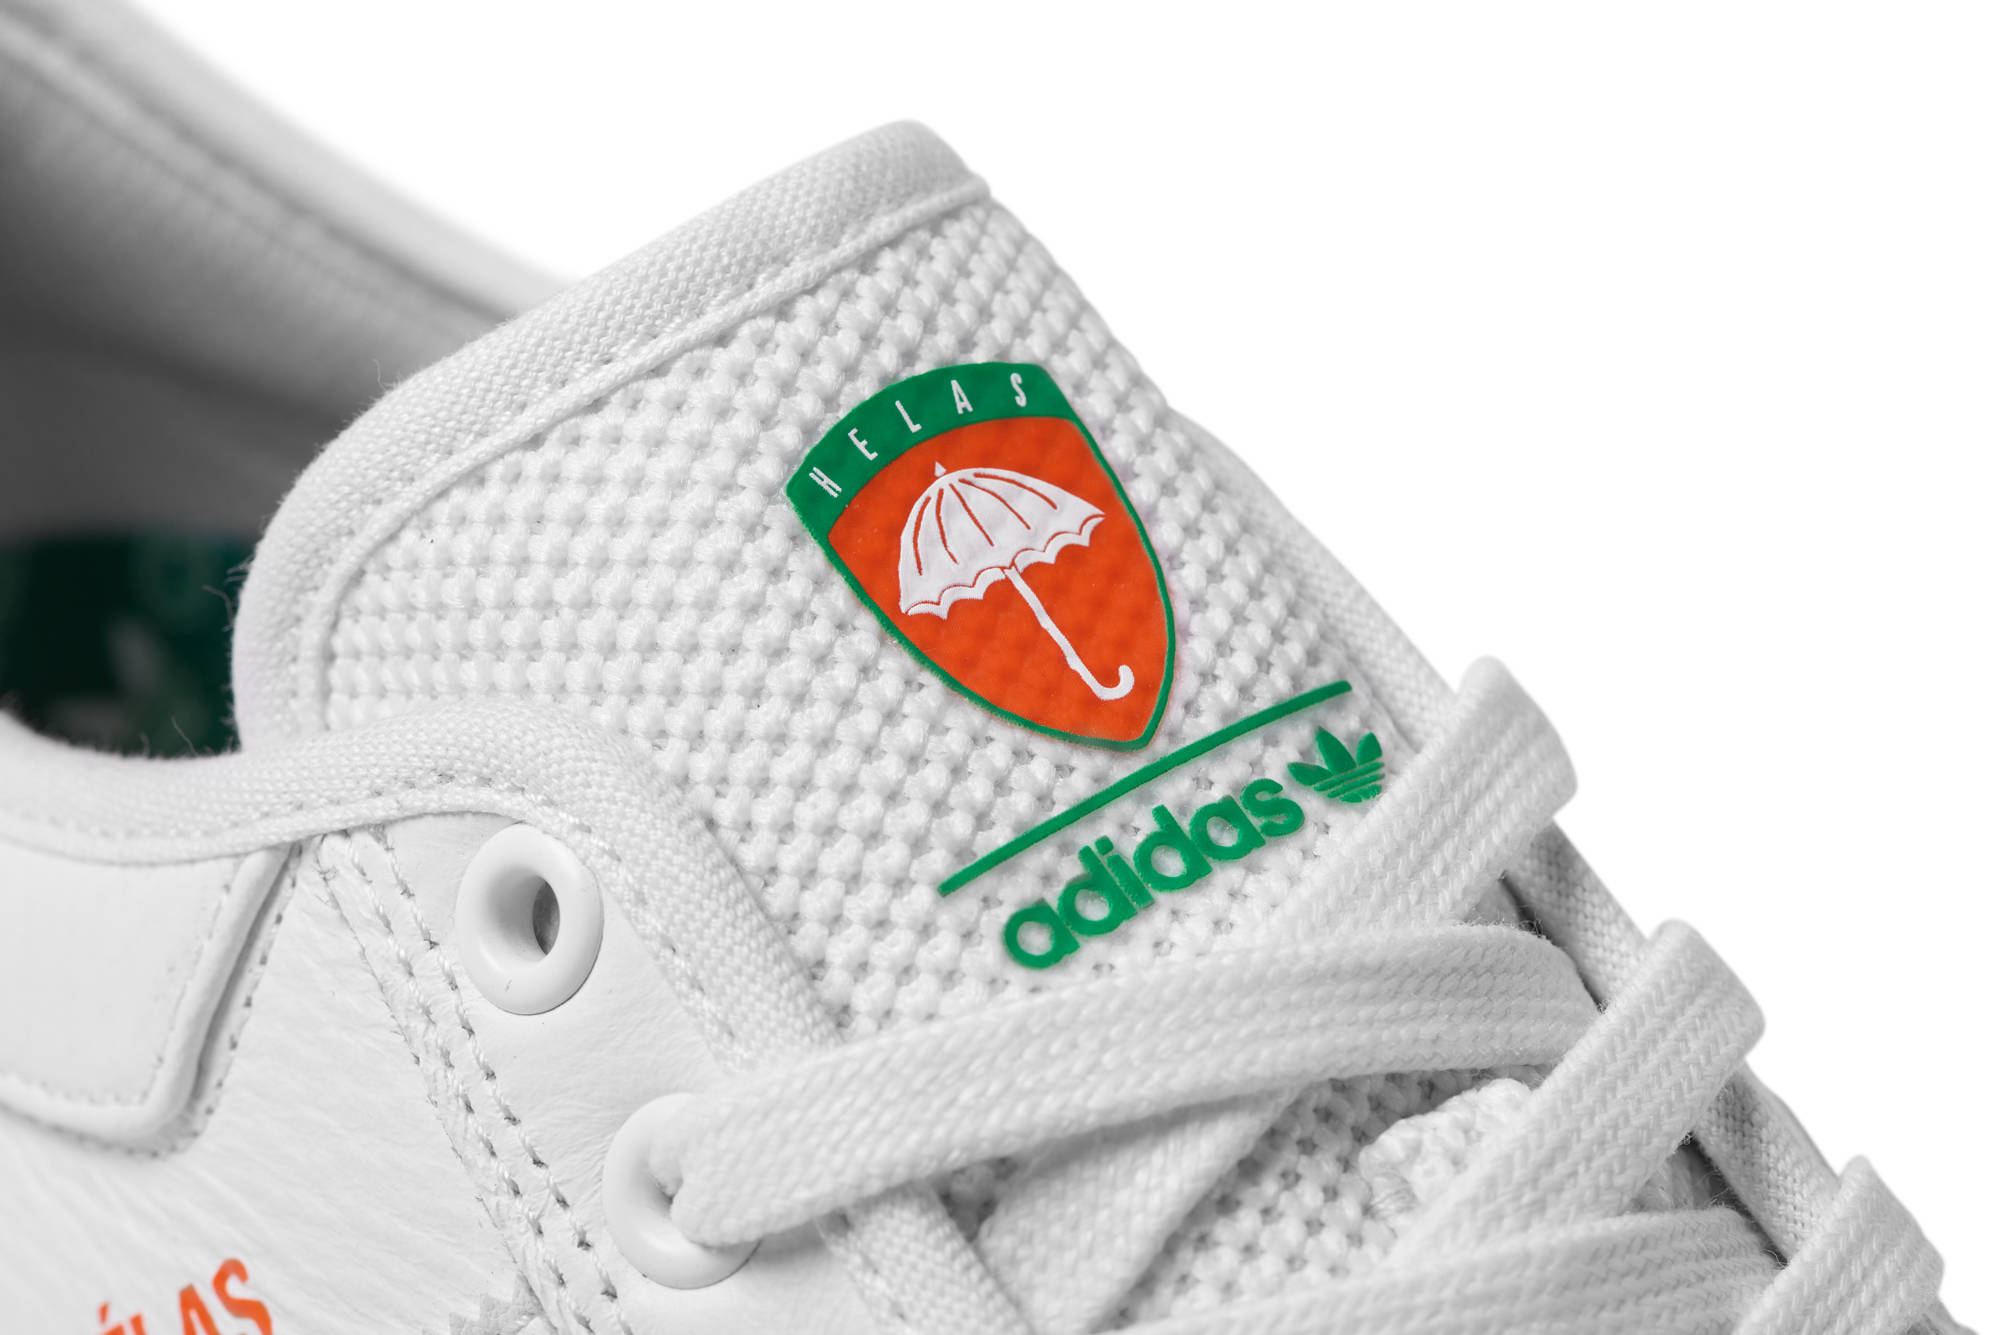 ADIDAS X HELAS COLLECTION Modernized '80s Court Style